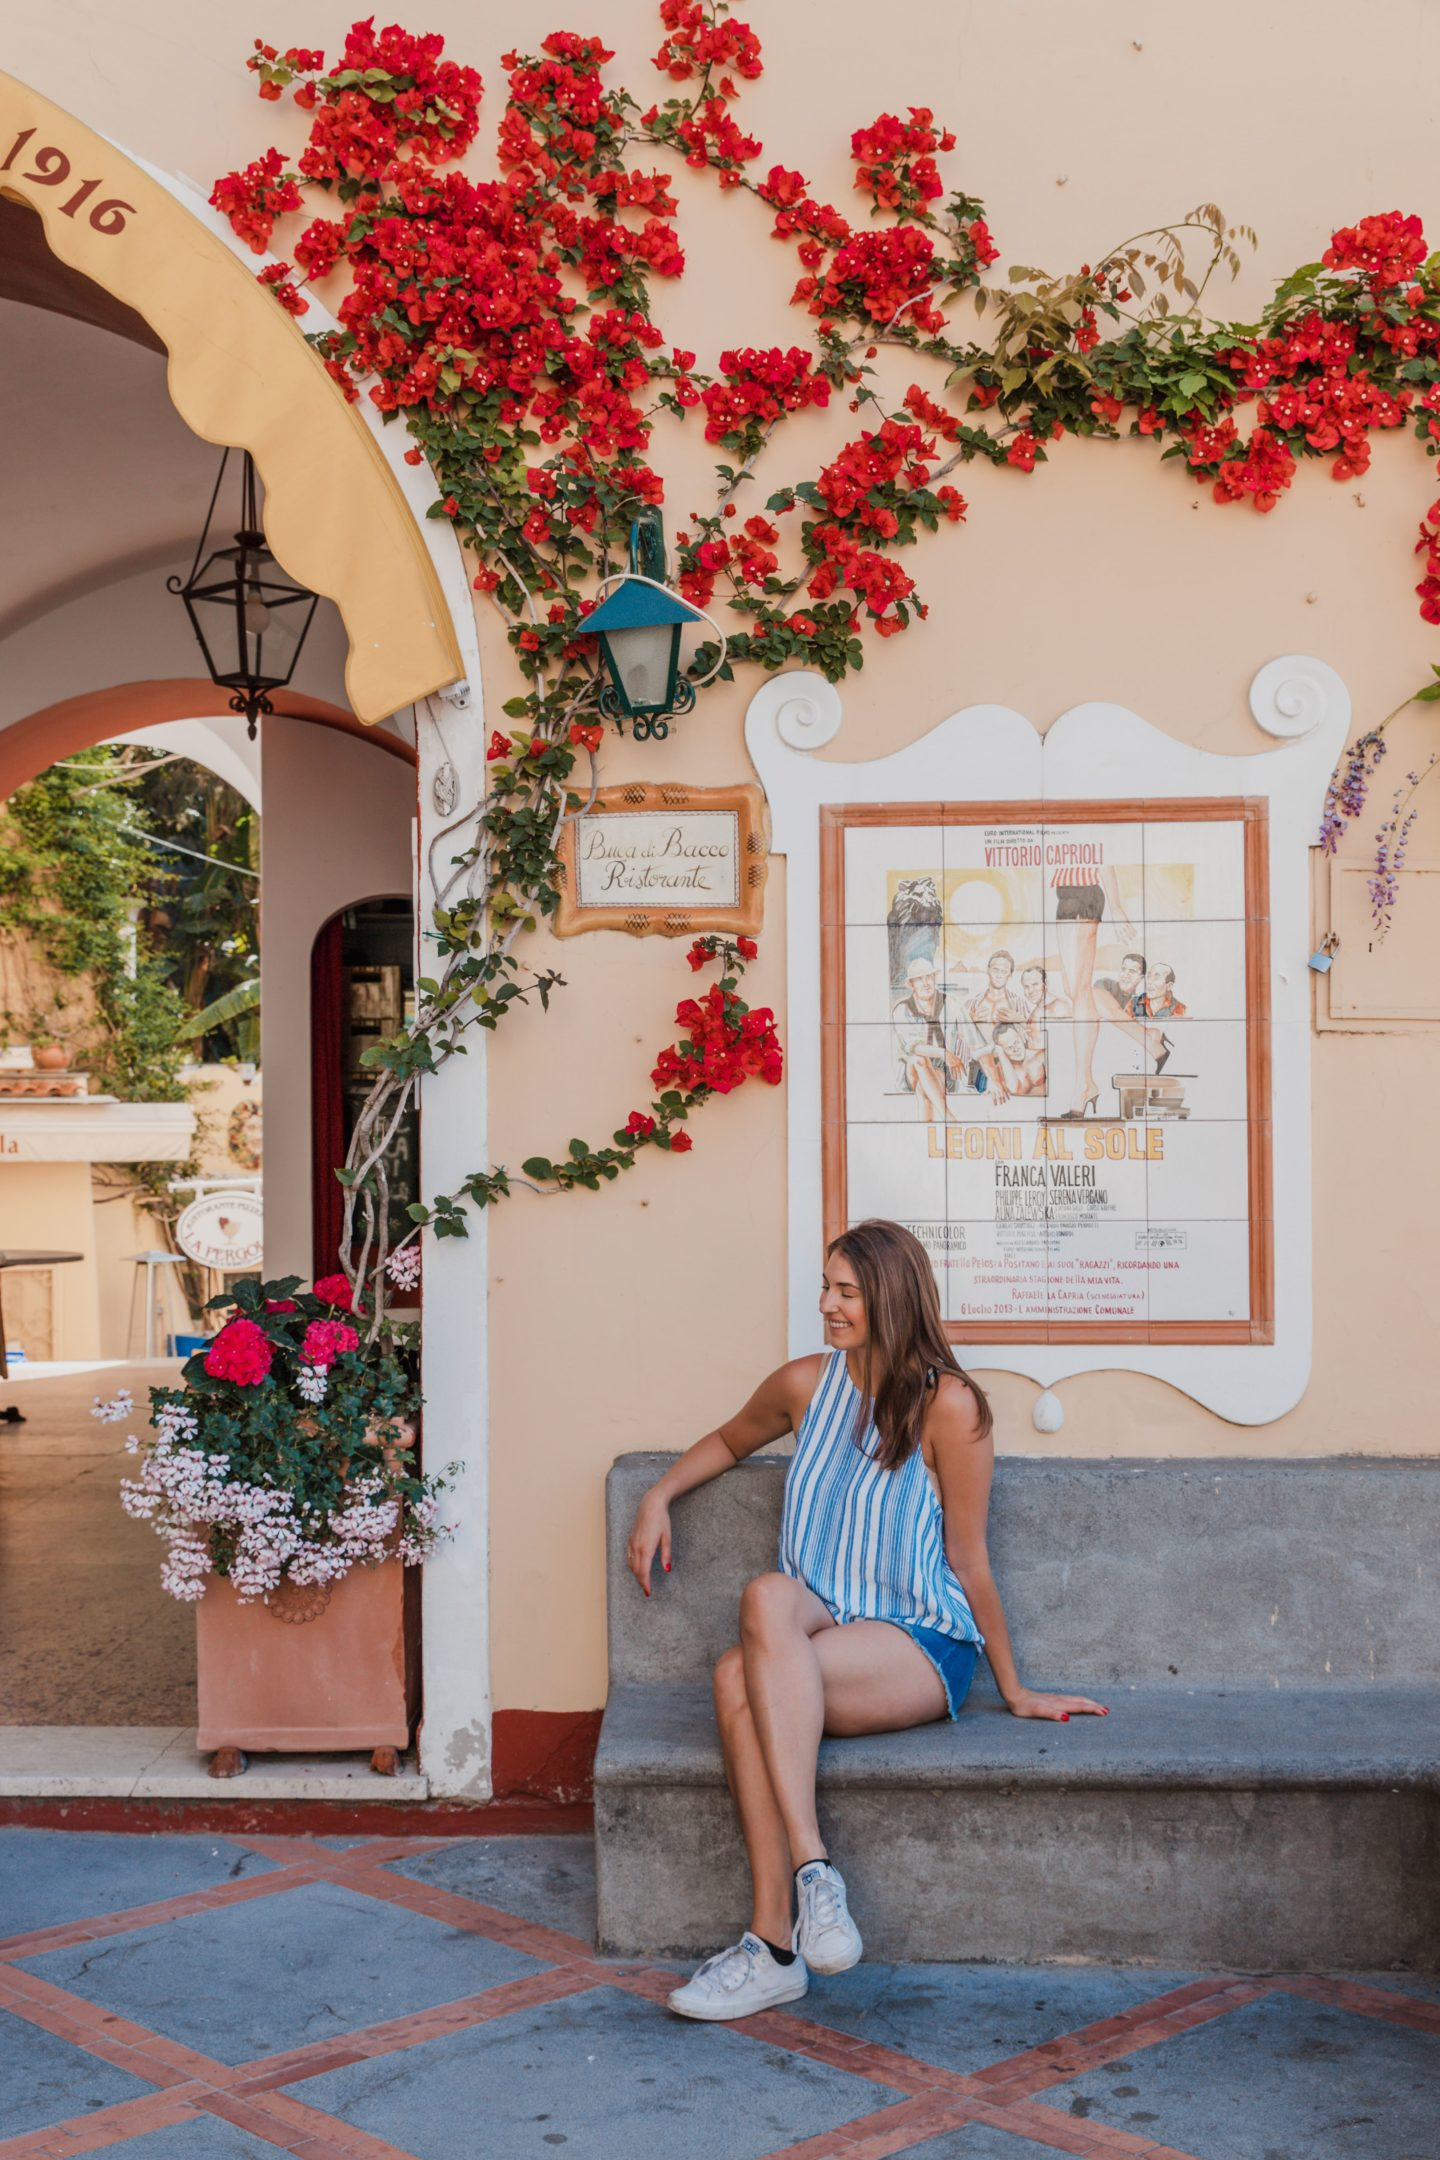 The Best Positano Instagram Shots | 12 Beautiful Shots You Can't Miss: Buca di Bacco